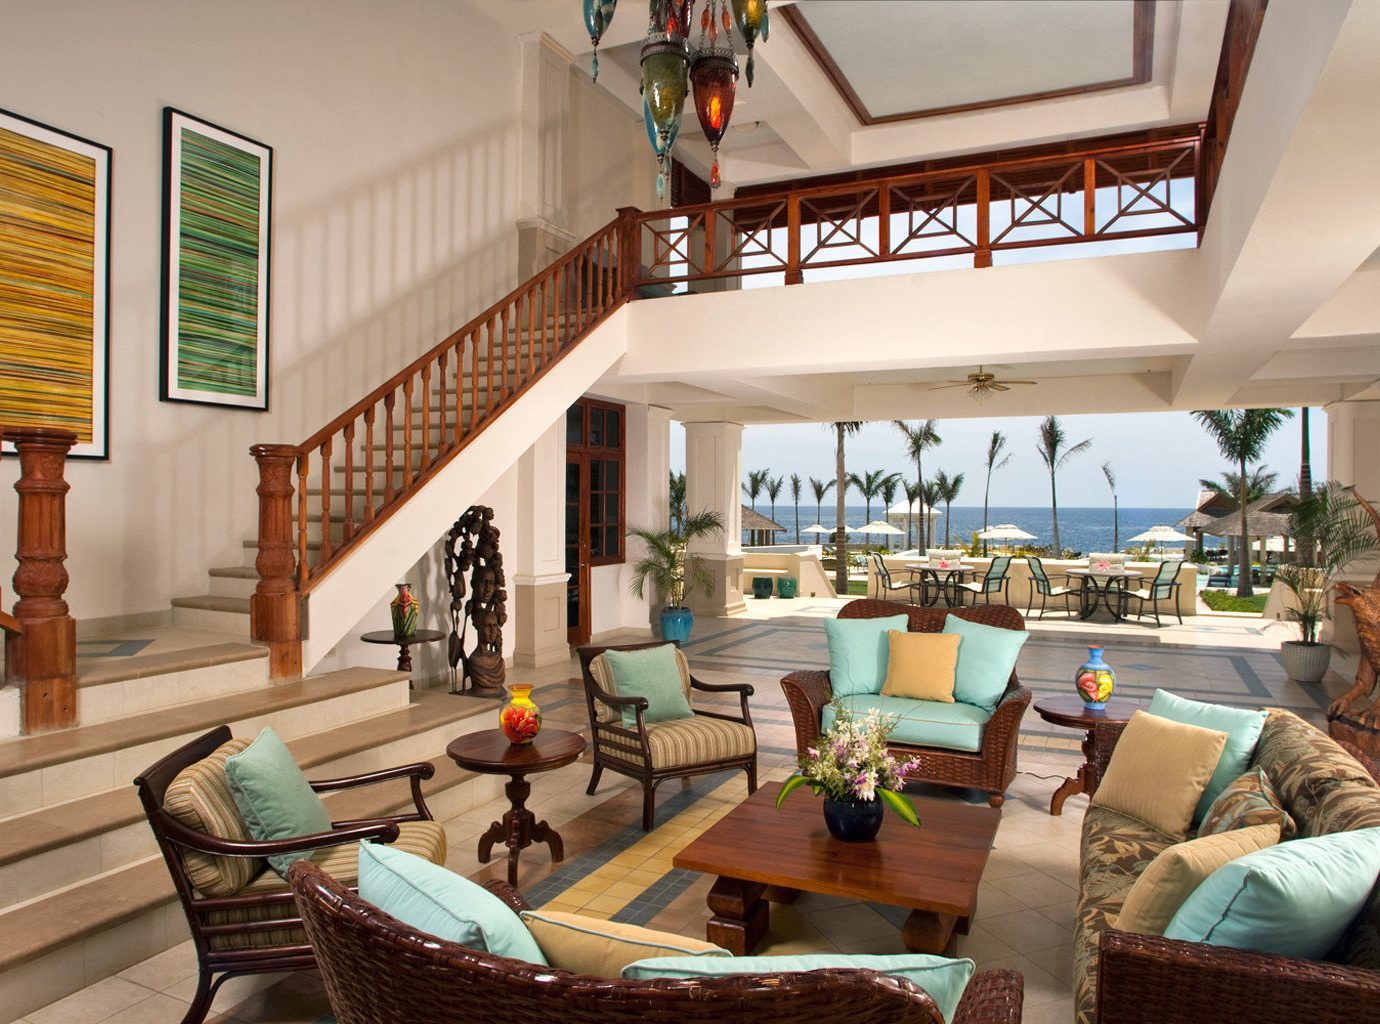 Island Lounge Scenic views Tropical living room property home house condominium Resort Villa cottage farmhouse mansion